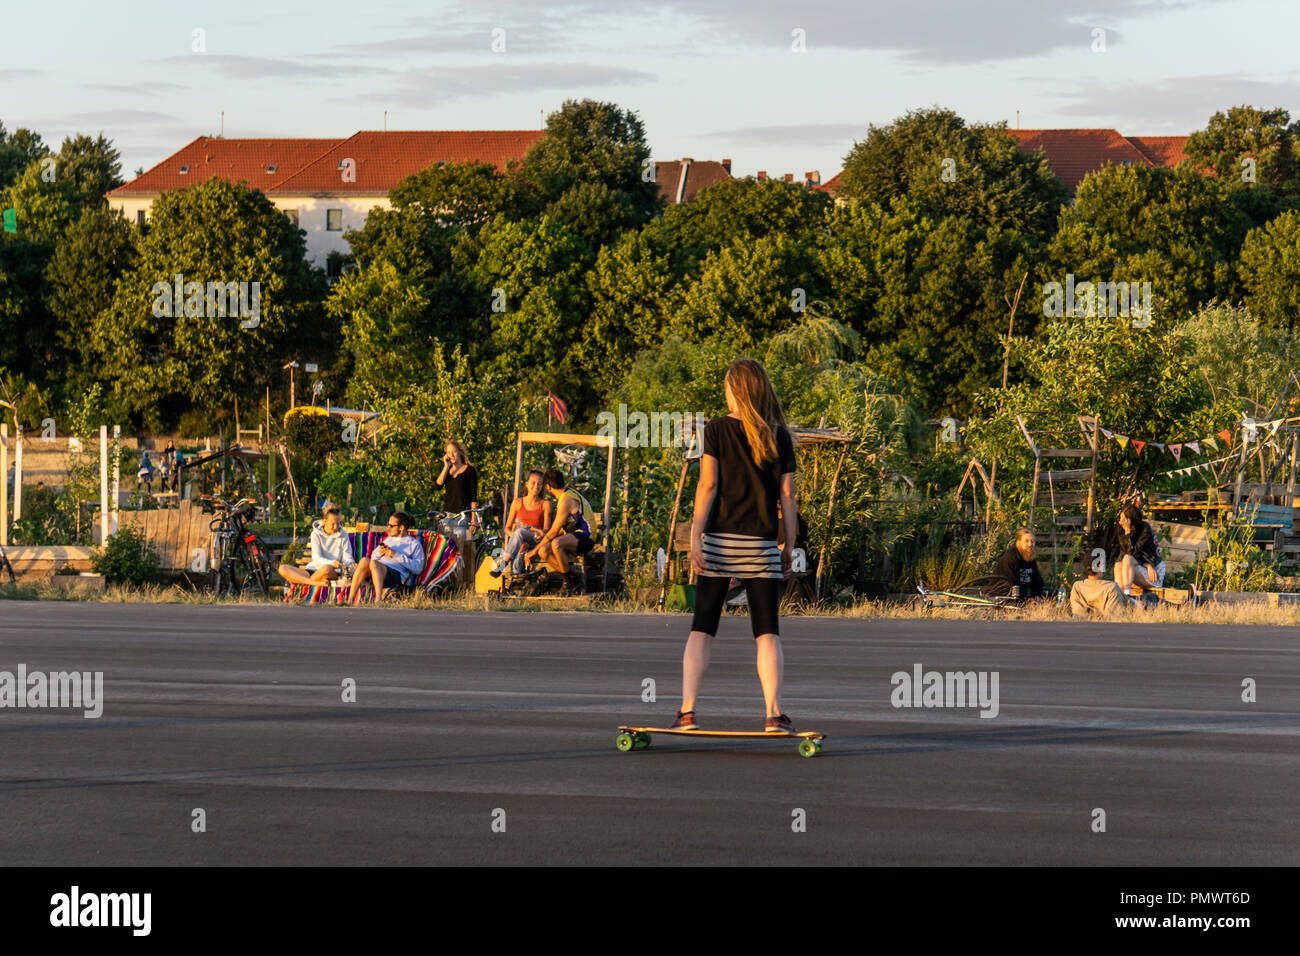 Tempelhofer Feld, roller scater at former airport area Tempelhof, urban garden, alternative scene, Berlin - Stock Image